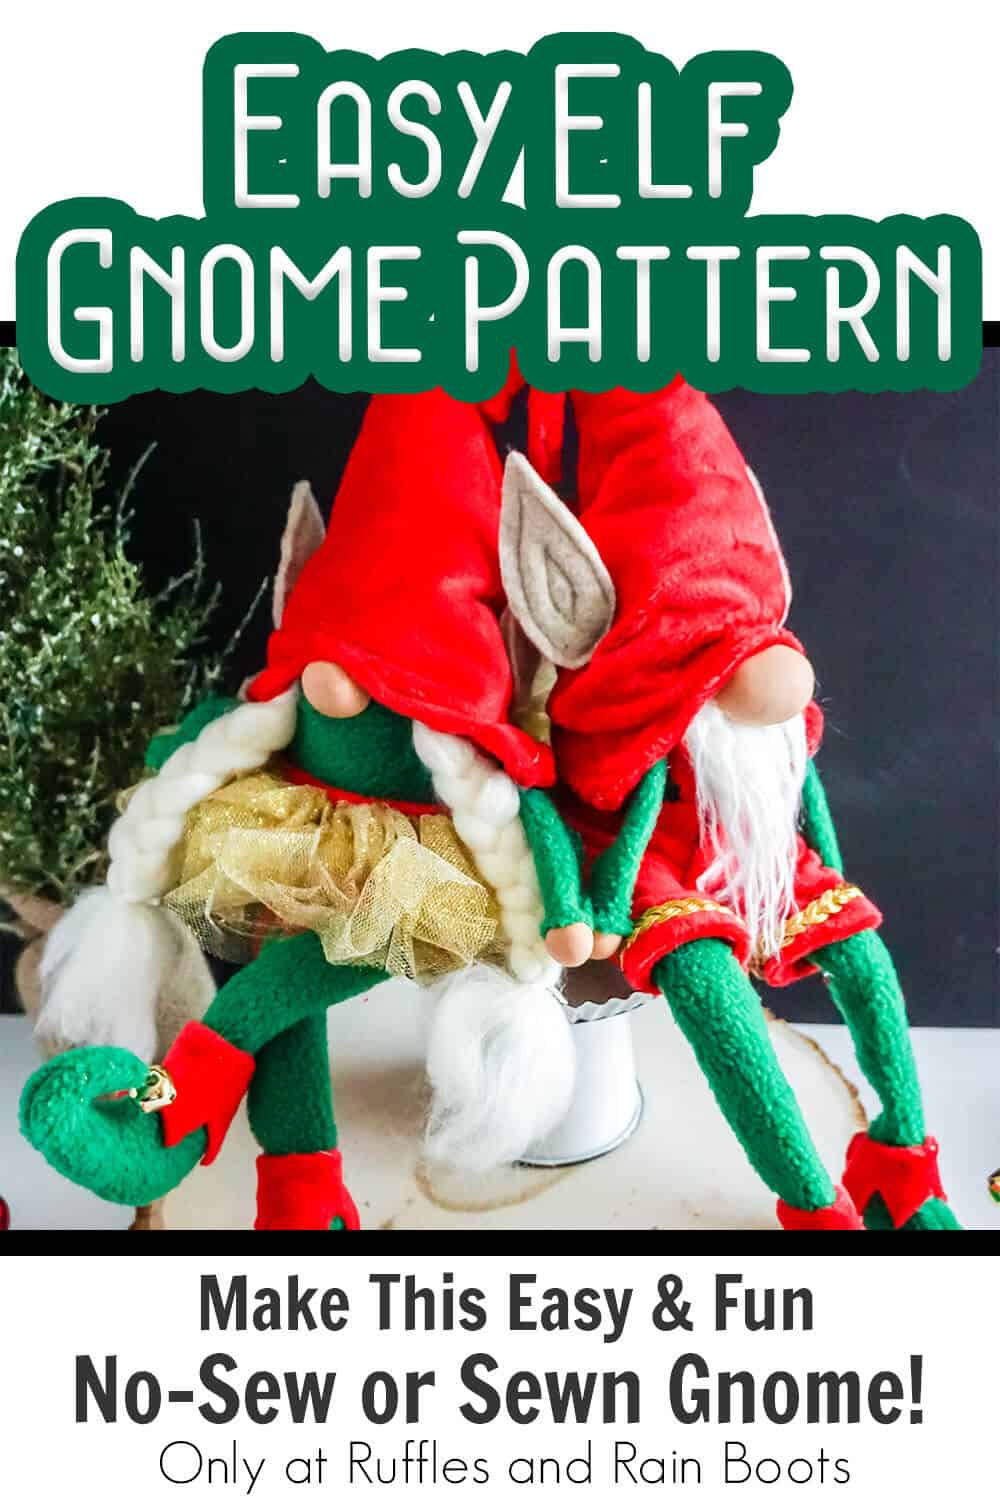 no-sew and sewn elf gnome pattern with text which reads easy elf gnome pattern make this easy & fun no-sew and sewn pattern!